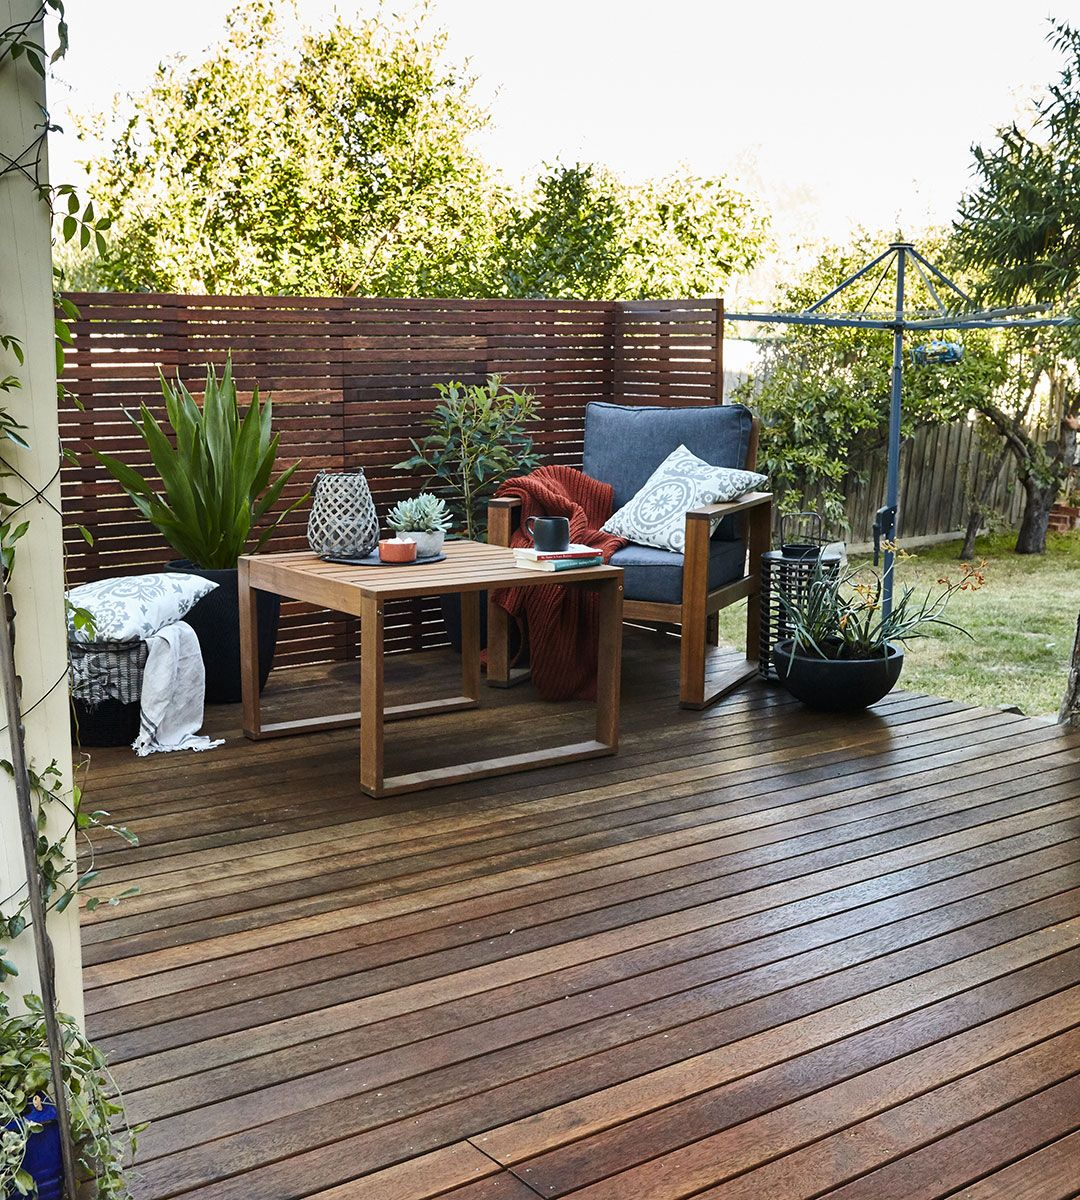 Restore your decking area and create a space made for entertaining we used intergrain slip resistant decking oil to bring this wood back to life bunnings